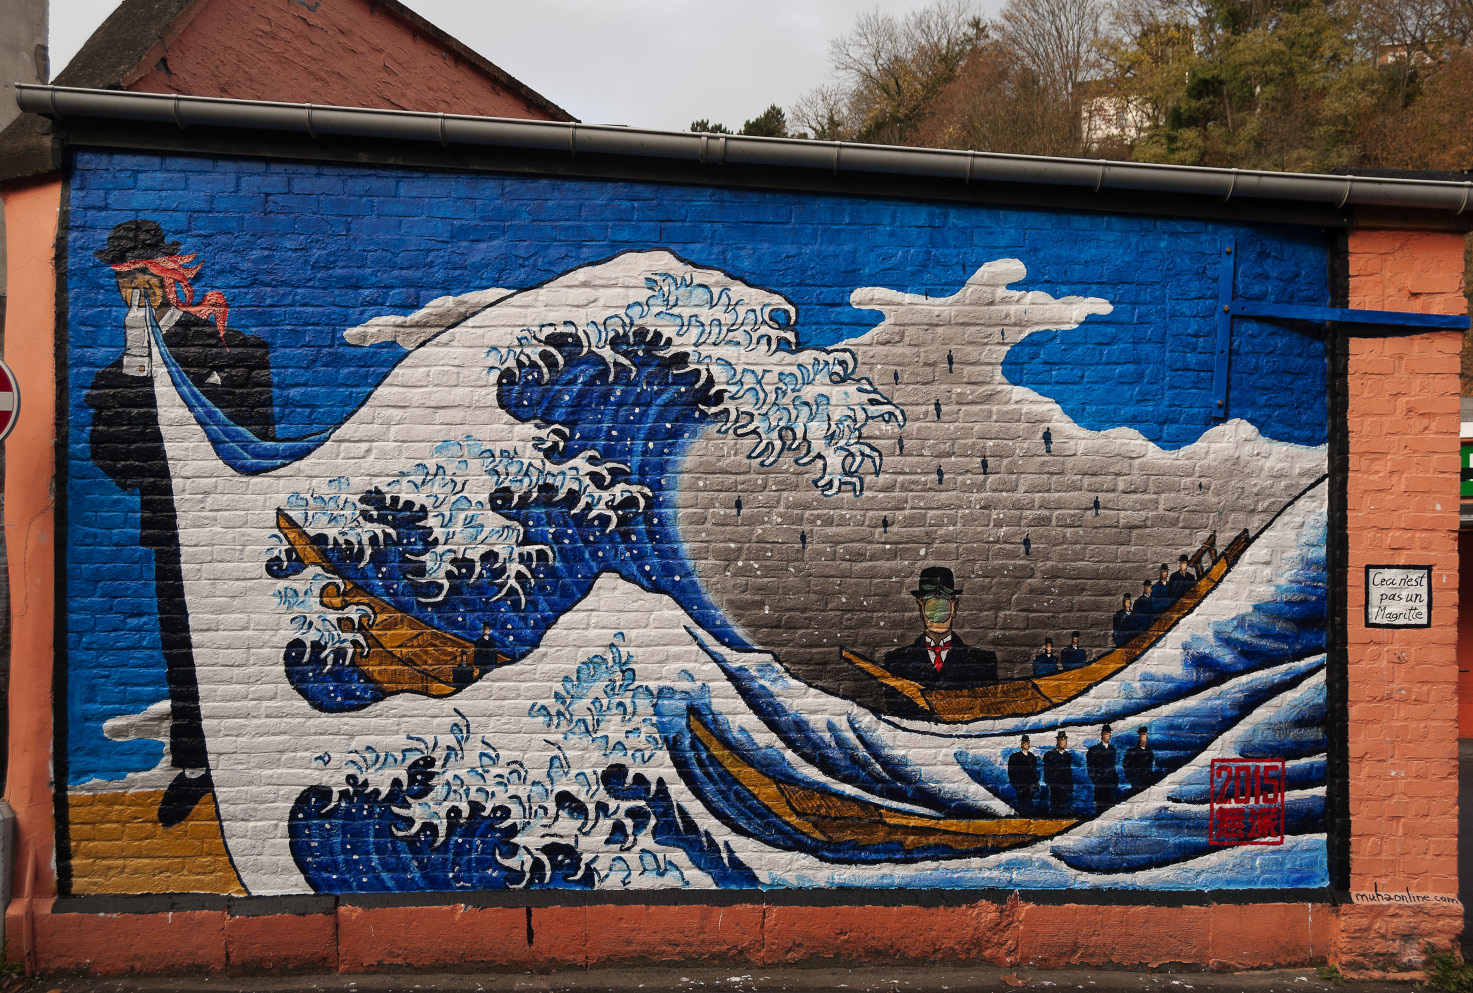 Ceci n'est pas un Magritte or The Great Wave of Verviers